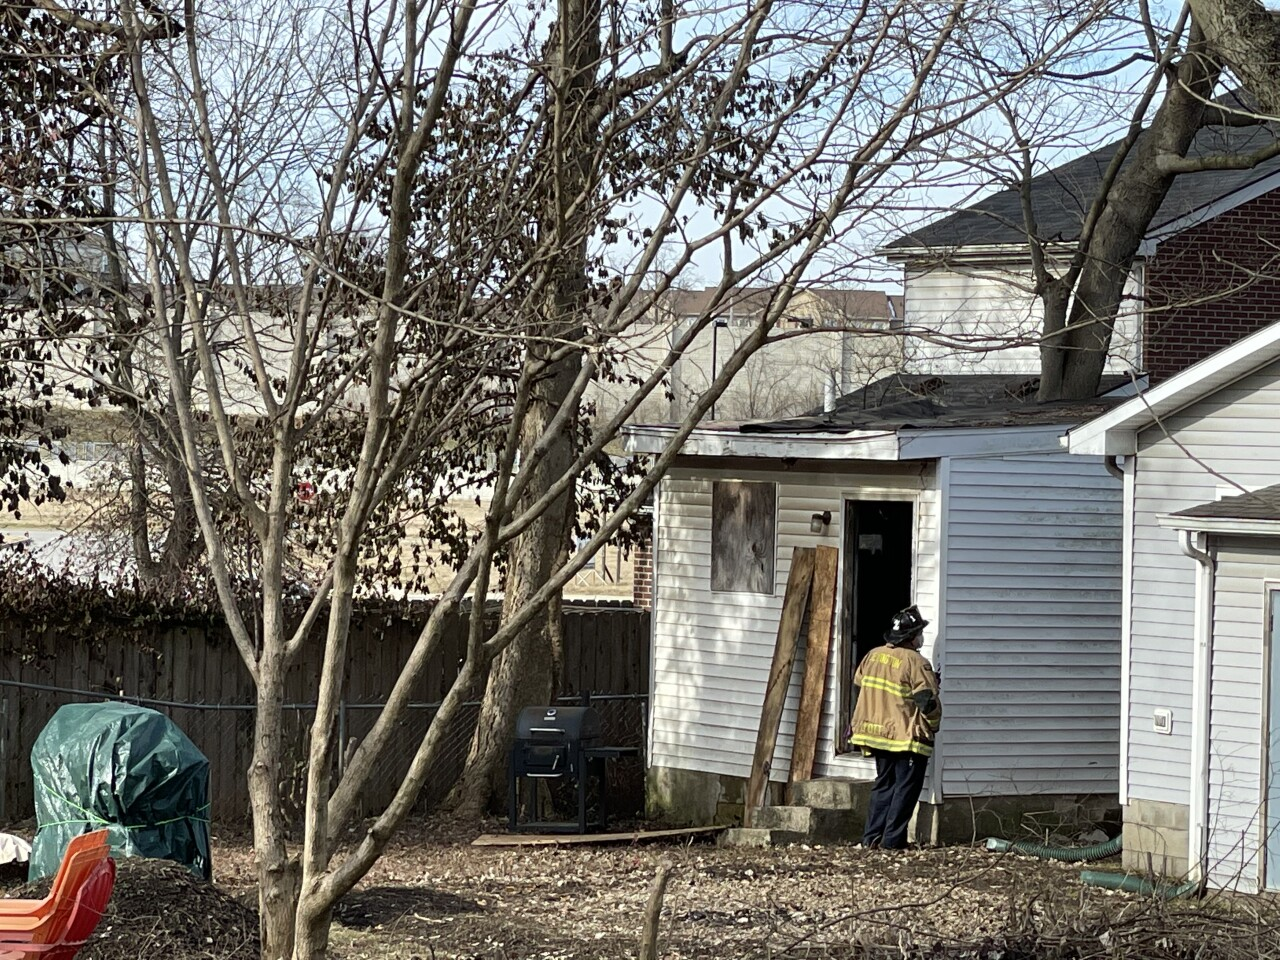 Firefighters work to rescue person trapped inside collapsed home